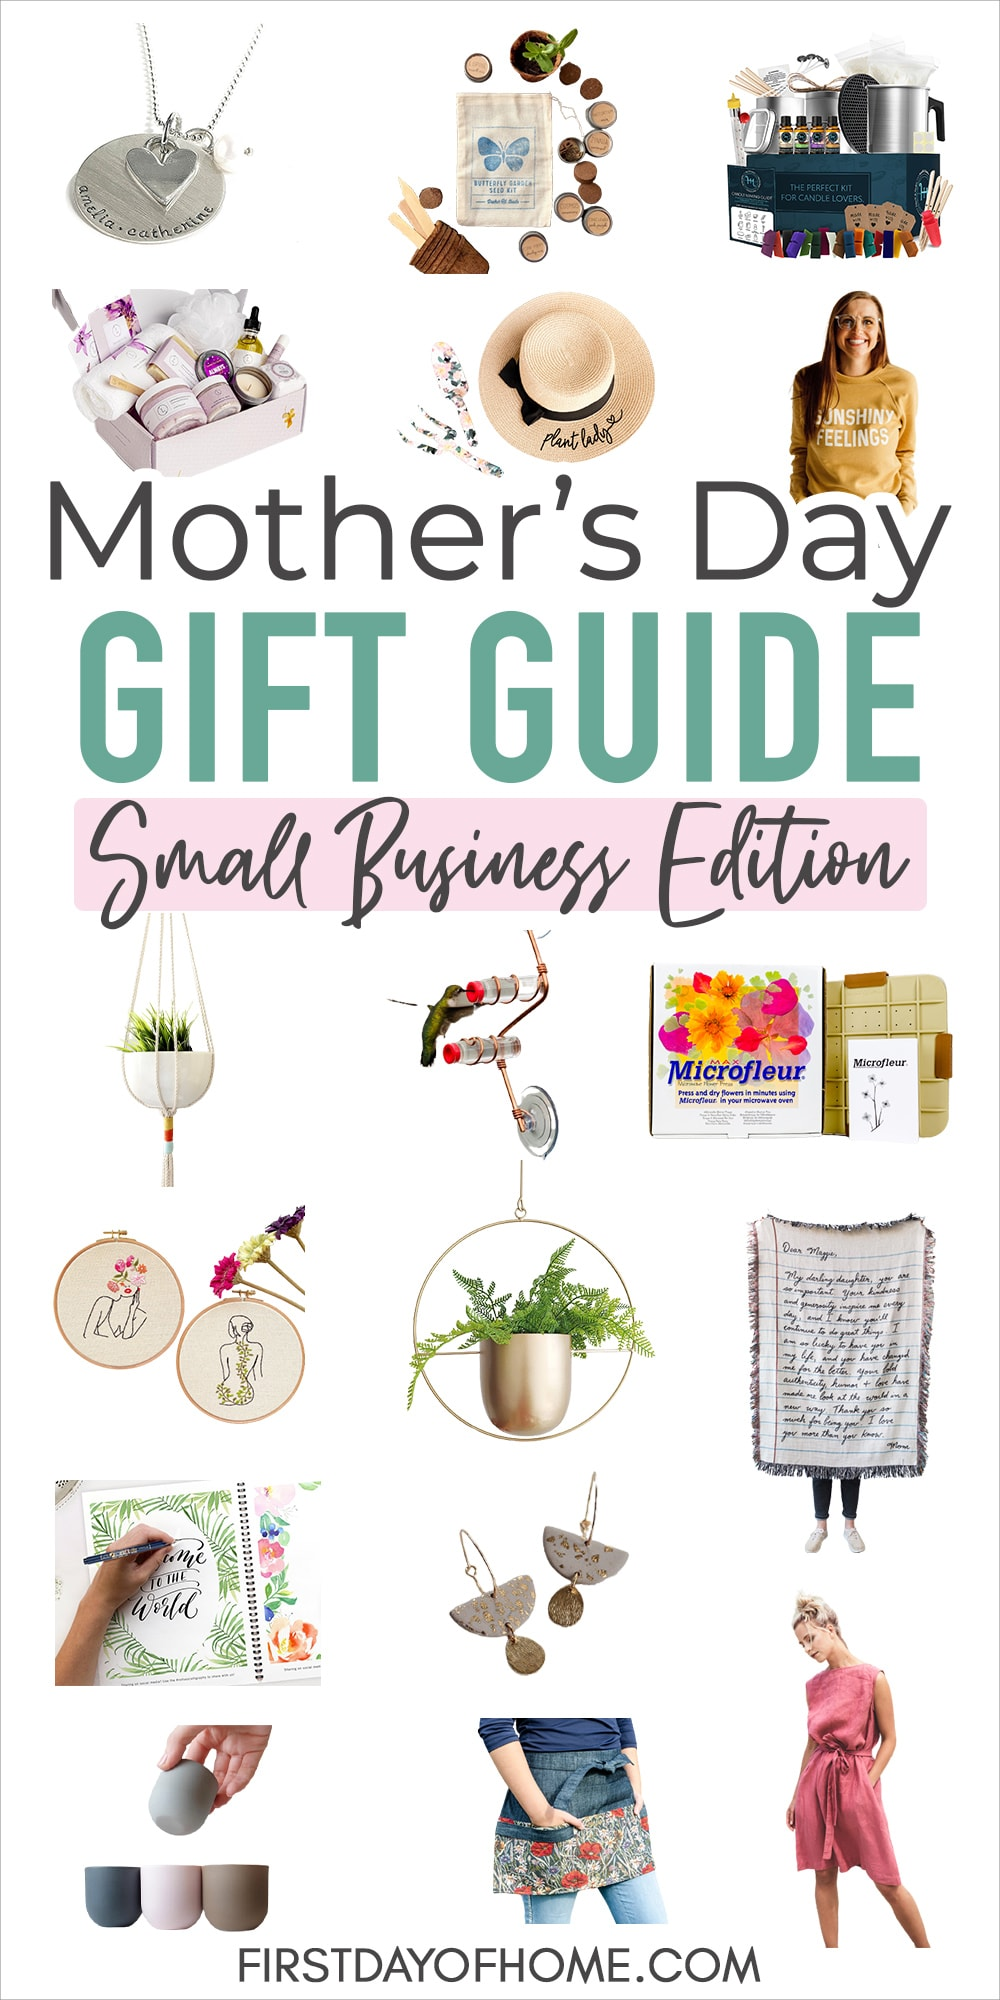 """Collection of gift items including apparel, jewelry, gardening gifts and craft/hobby kits for mothers with text overlay reading """"Mother's Day Gift Guide Small Business Edition"""""""